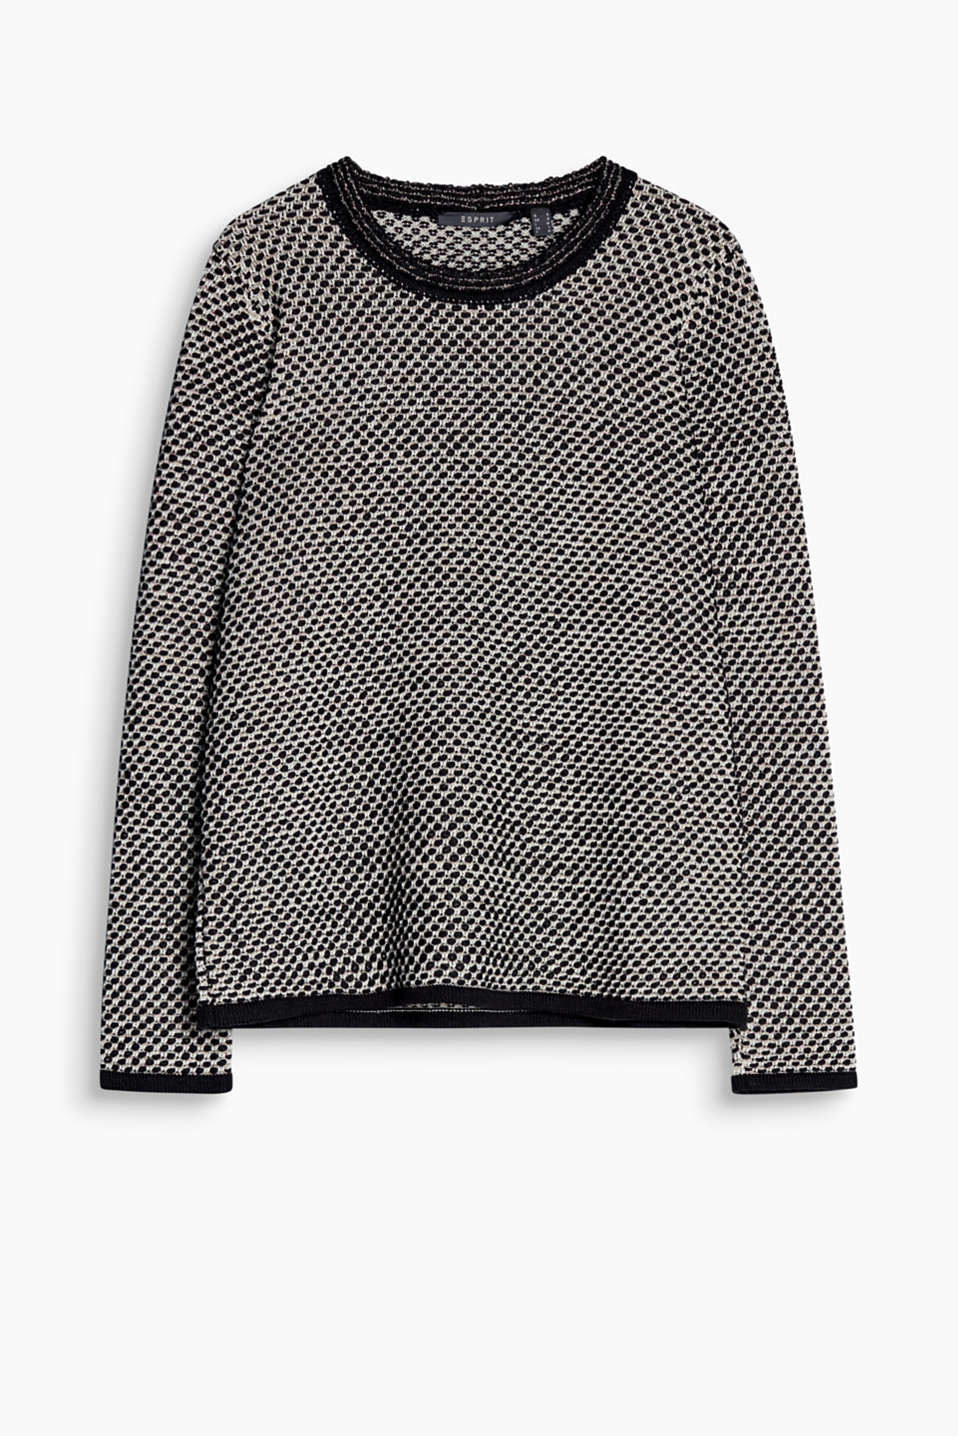 Luxurious fashion just got super comfortable: textured lurex jumper made of soft blended cotton in a casual cut